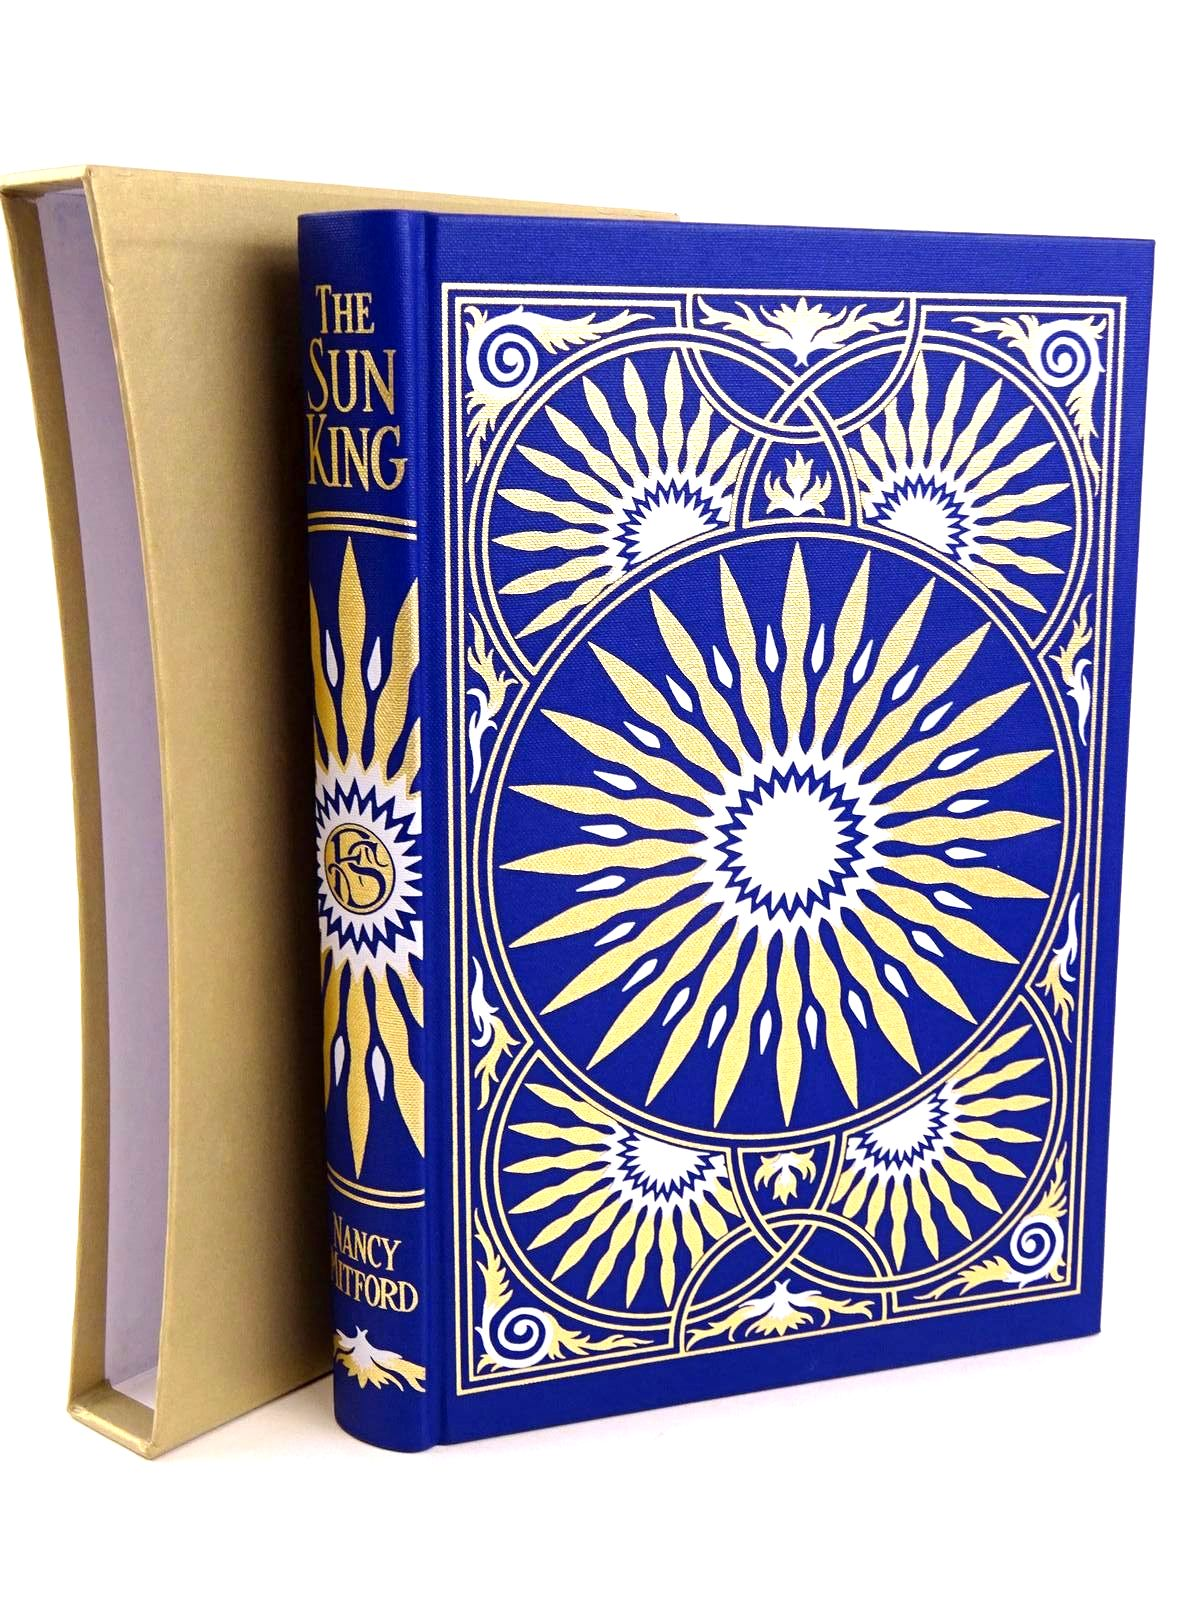 Photo of THE SUN KING written by Mitford, Nancy published by Folio Society (STOCK CODE: 1318306)  for sale by Stella & Rose's Books